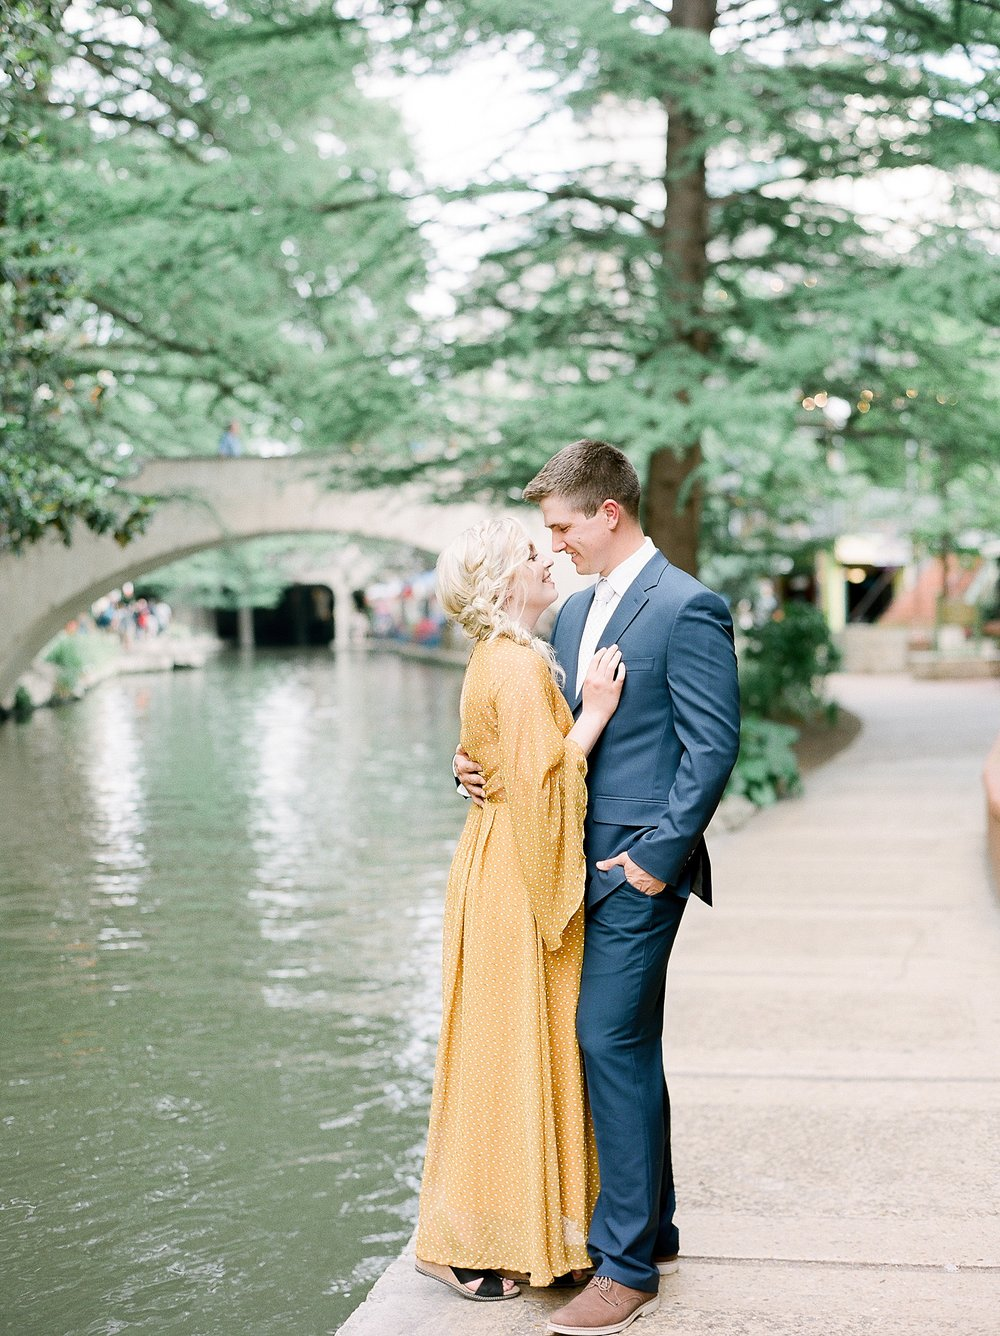 Hybrid Co Anniversary Shoot at River Walk, San Antonio, TX by Julie Paisley Photography_0002.jpg